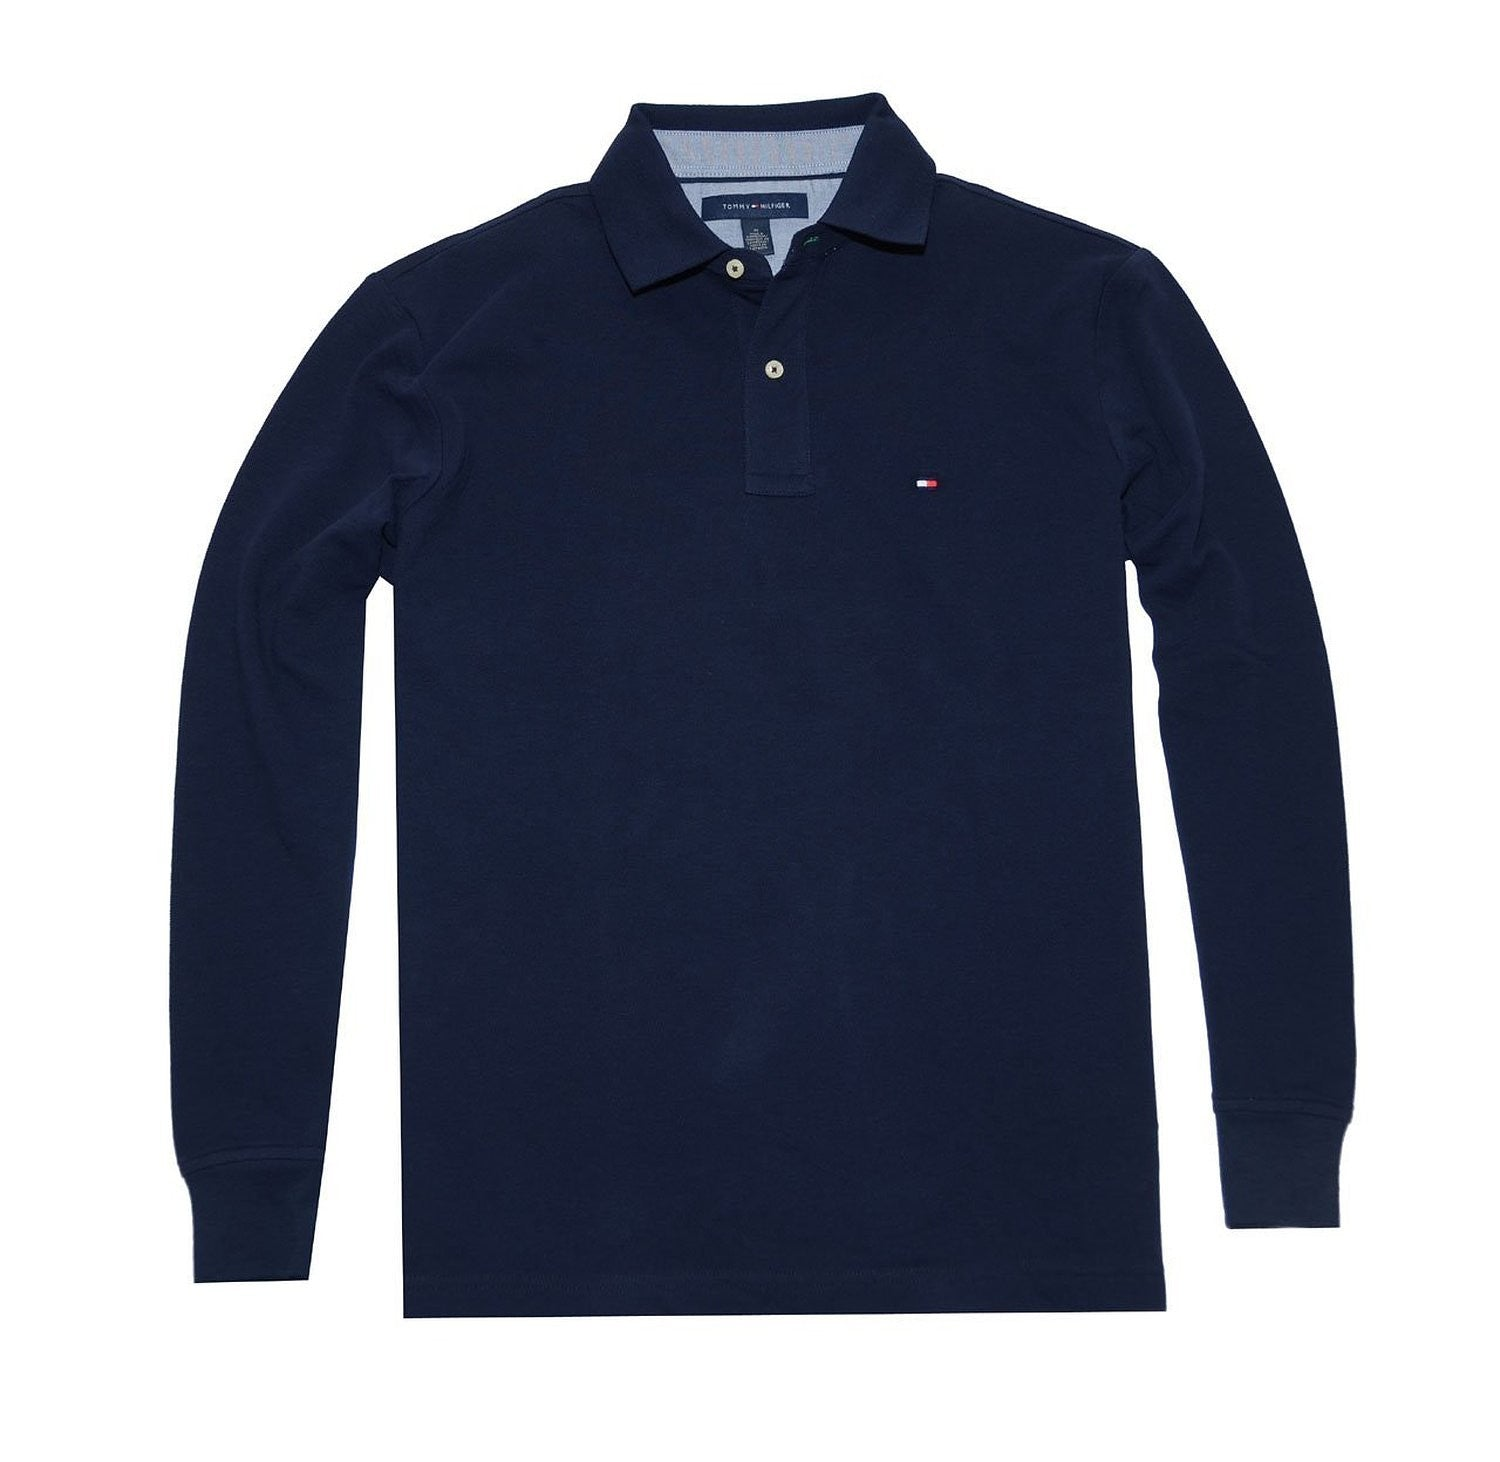 7841cc5be4 Tommy Hilfiger Men Classic Long Sleeve Logo Polo T-shirt – Zion Clothing    Accessories